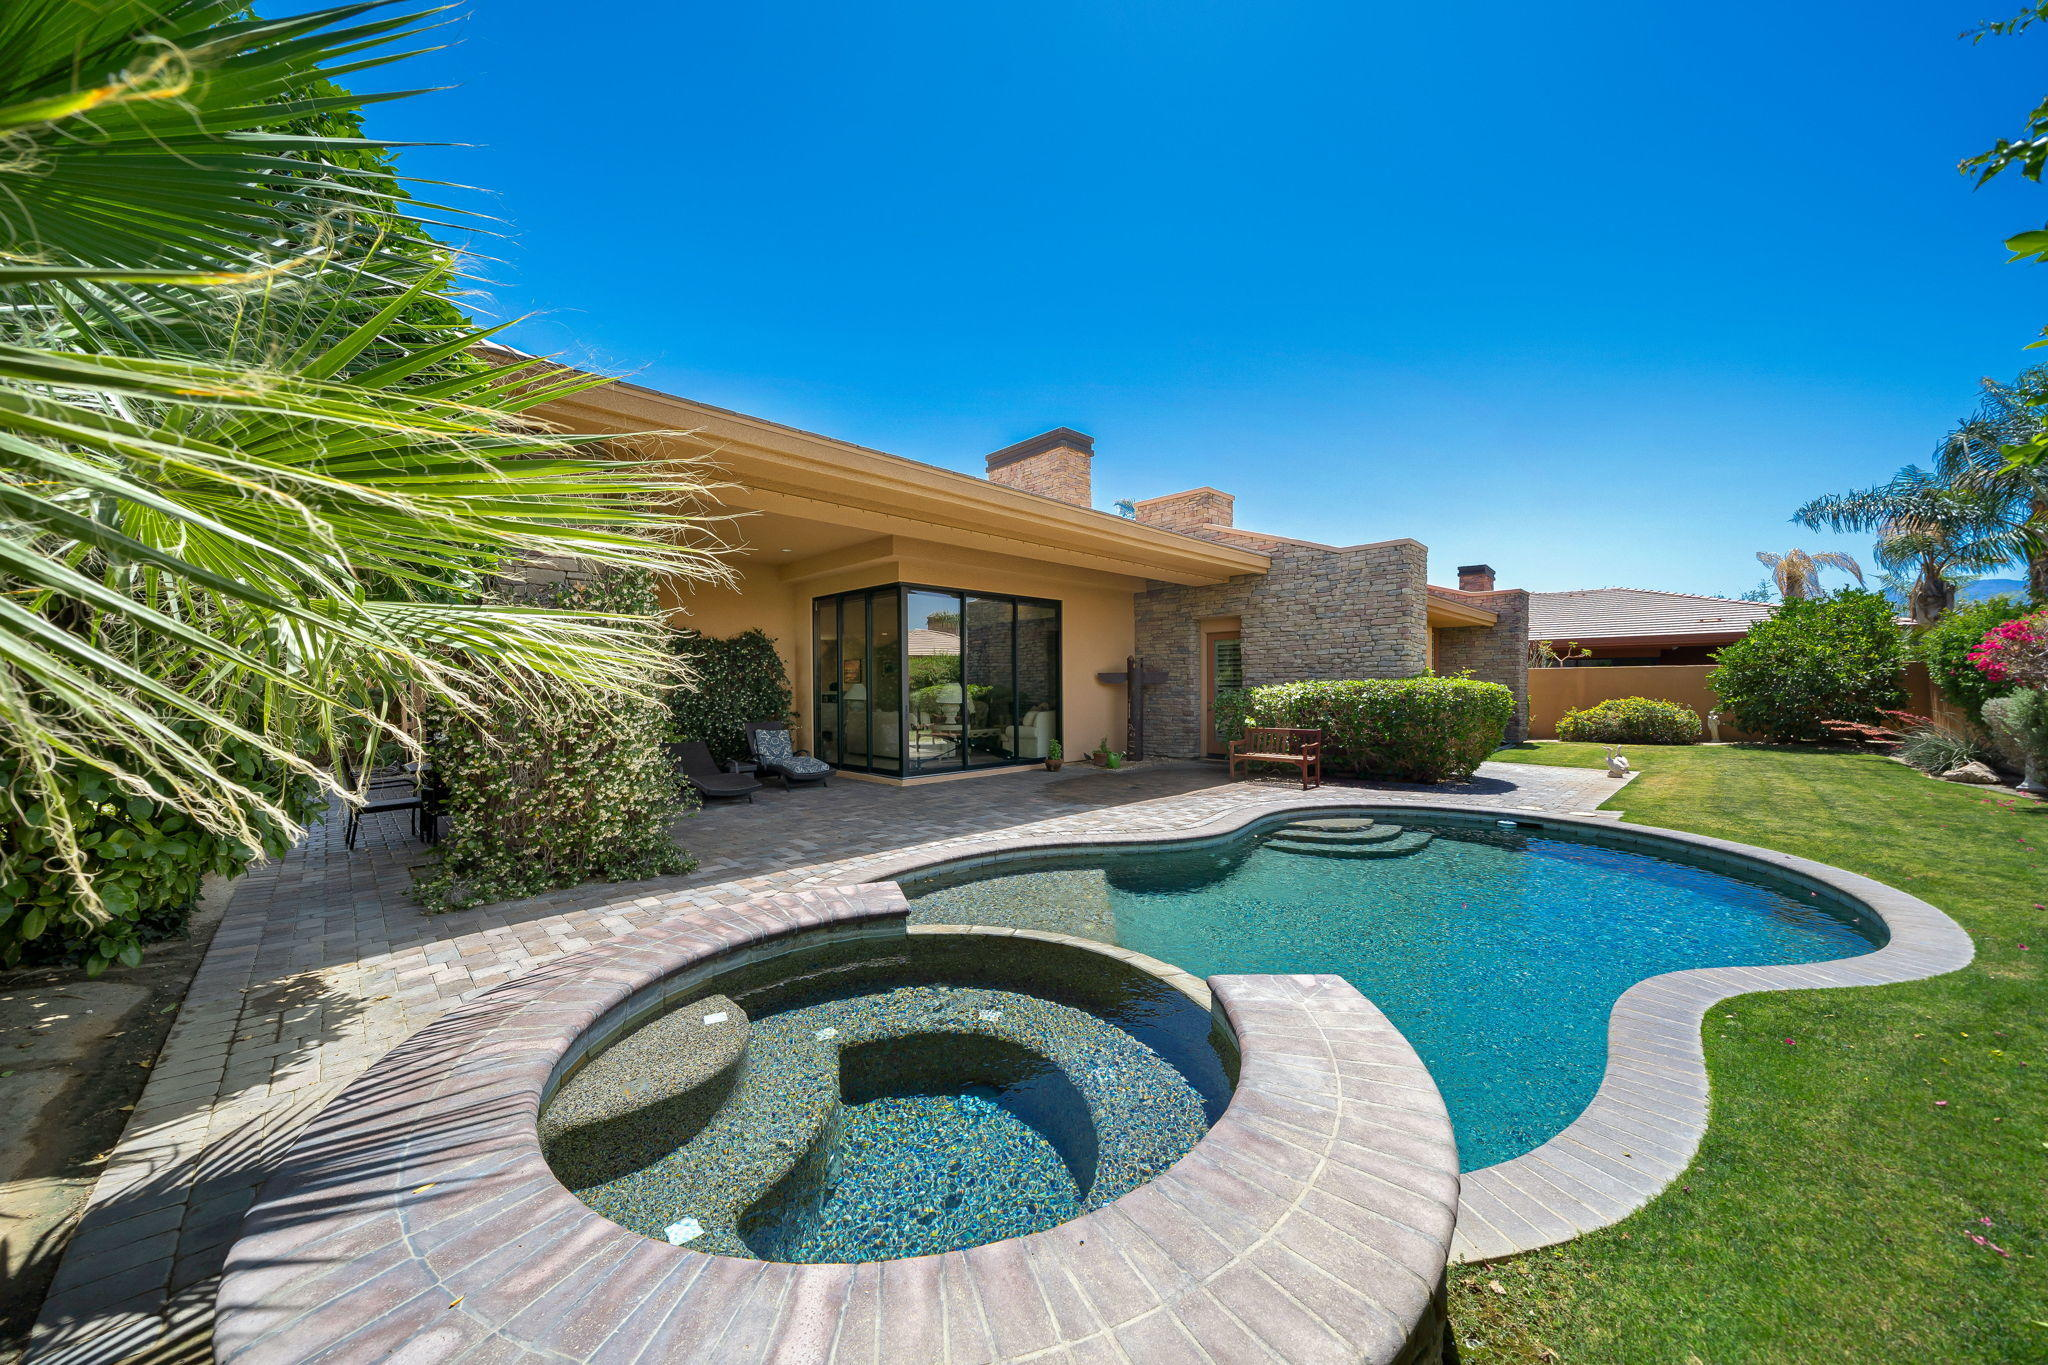 A curved driveway welcomes you to this sensational La Quinta home where style and elegance highlight the finest in contemporary comfort. One entire wall of the great room is done in stone and features a fireplace and built-in shelving. The elegant main living areas have tile floors, recessed lighting, and an earth-tone color scheme. Floor-to-ceiling windows frame your magnificent mountain views while the ultra-modern kitchen has stainless steel appliances, granite countertops, and a center island. You'll also have a wet bar for more memorable entertainment. There are three carpeted bedrooms, one of which is being used as a den, and three baths.  Double doors lead to the backyard where mature landscaping ensures your privacy as you're cooled by the misting system on the stone patio. End your evenings at your shimmering pool and spa under the desert night sky. You can relax here knowing you're protected by security 24 hours a day, and you'll be close to great shopping, dining, and entertainment options. This is a wonderful place to start living your dream desert life, so come take a tour while it's still available!